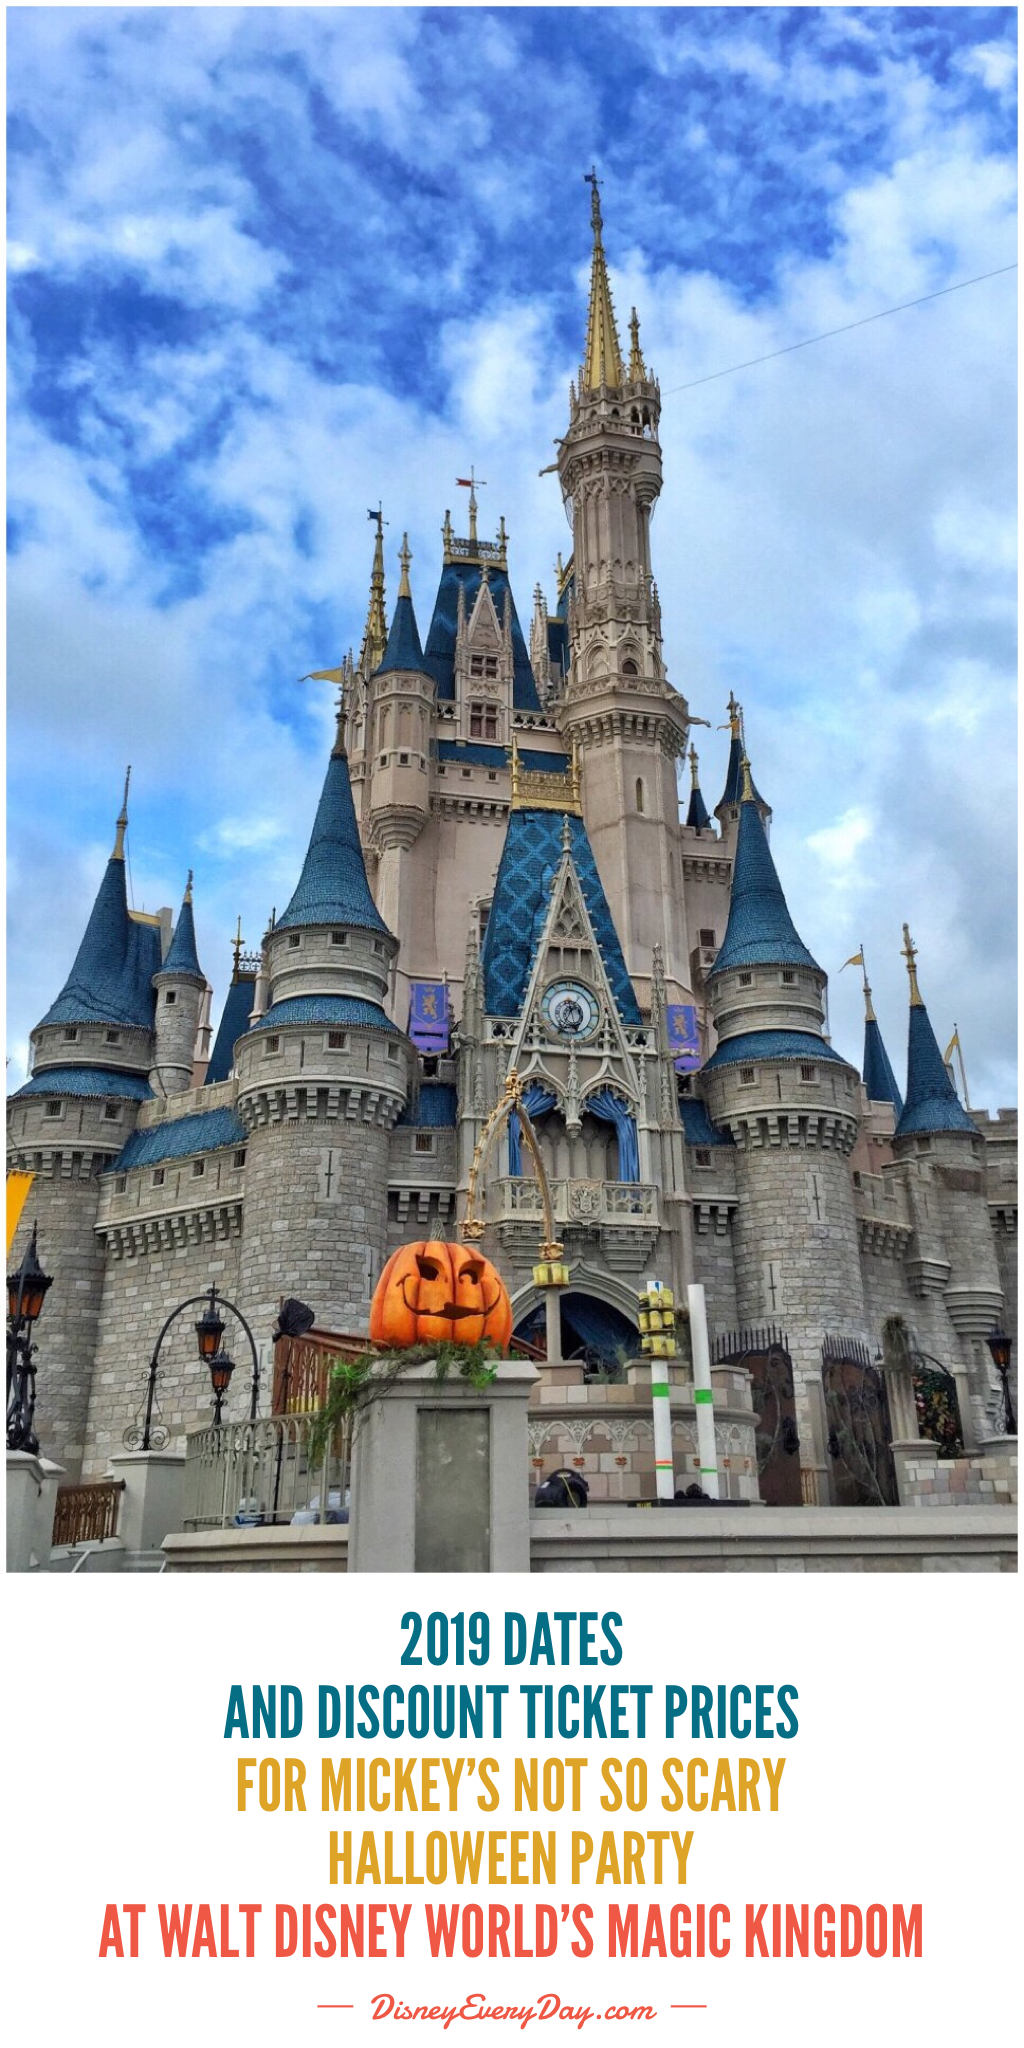 Dates And Discount Ticket Prices For The 2019 Mickey S Not So Scary Halloween Party At Walt Di Scary Halloween Party Disney World Magic Kingdom Scary Halloween